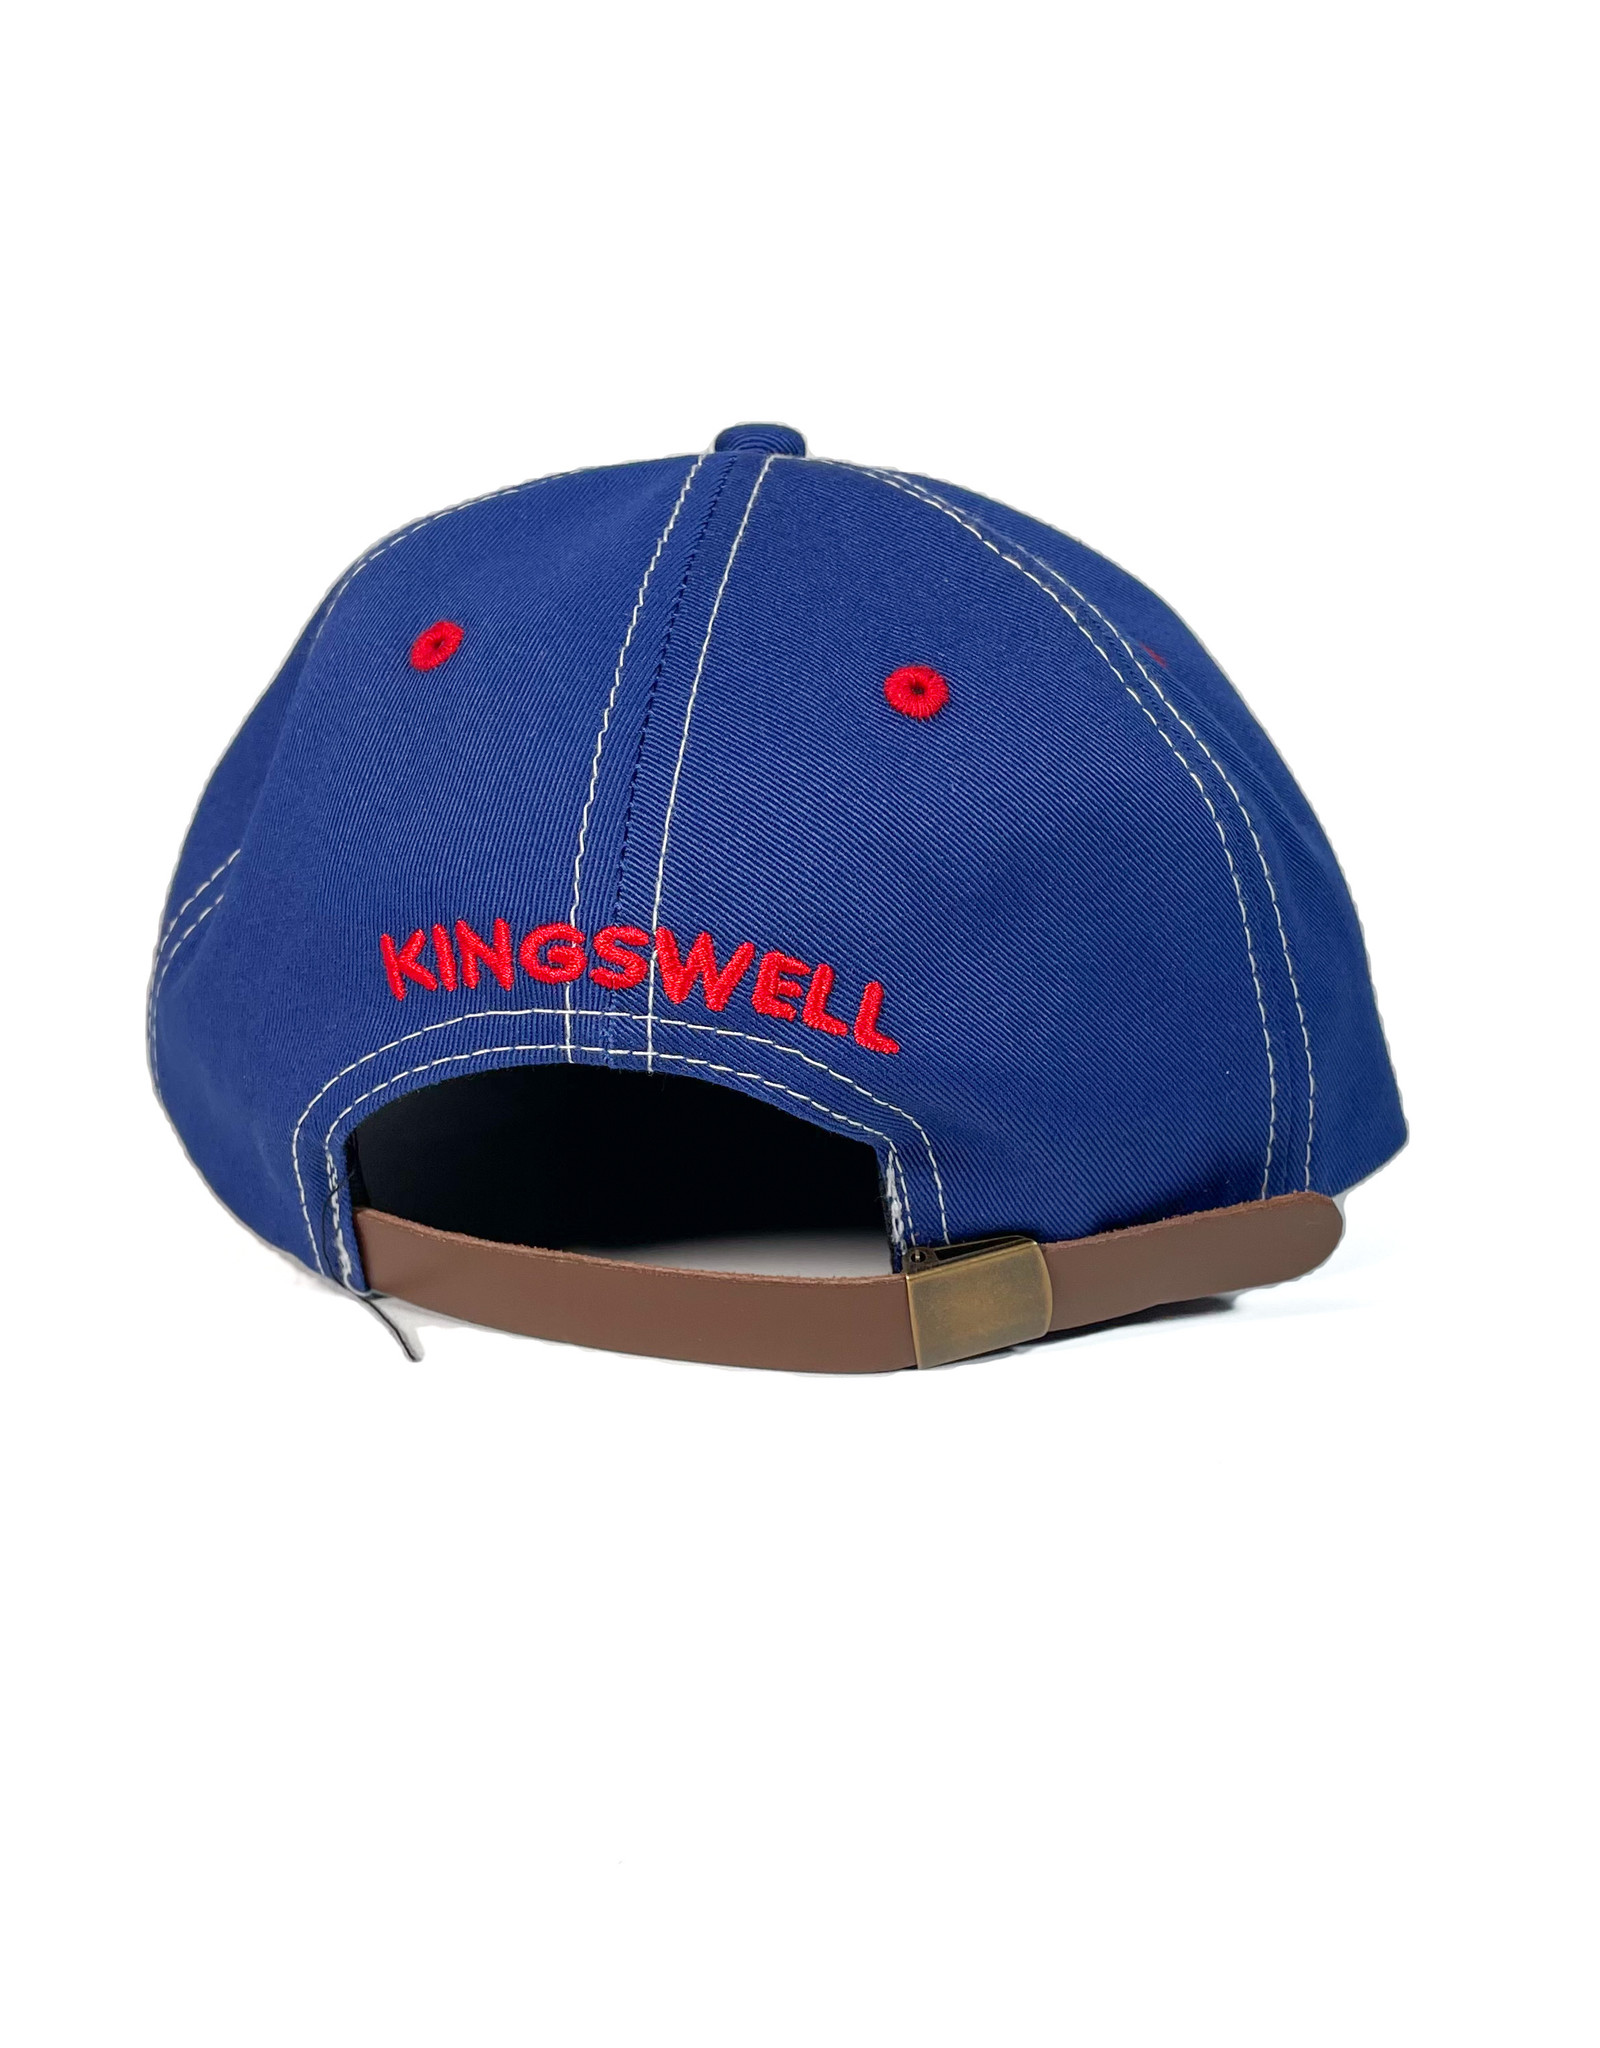 KINGSWELL KINGSWELL MOUSE RIPPER 6 PANEL HAT - BLUE STITCH